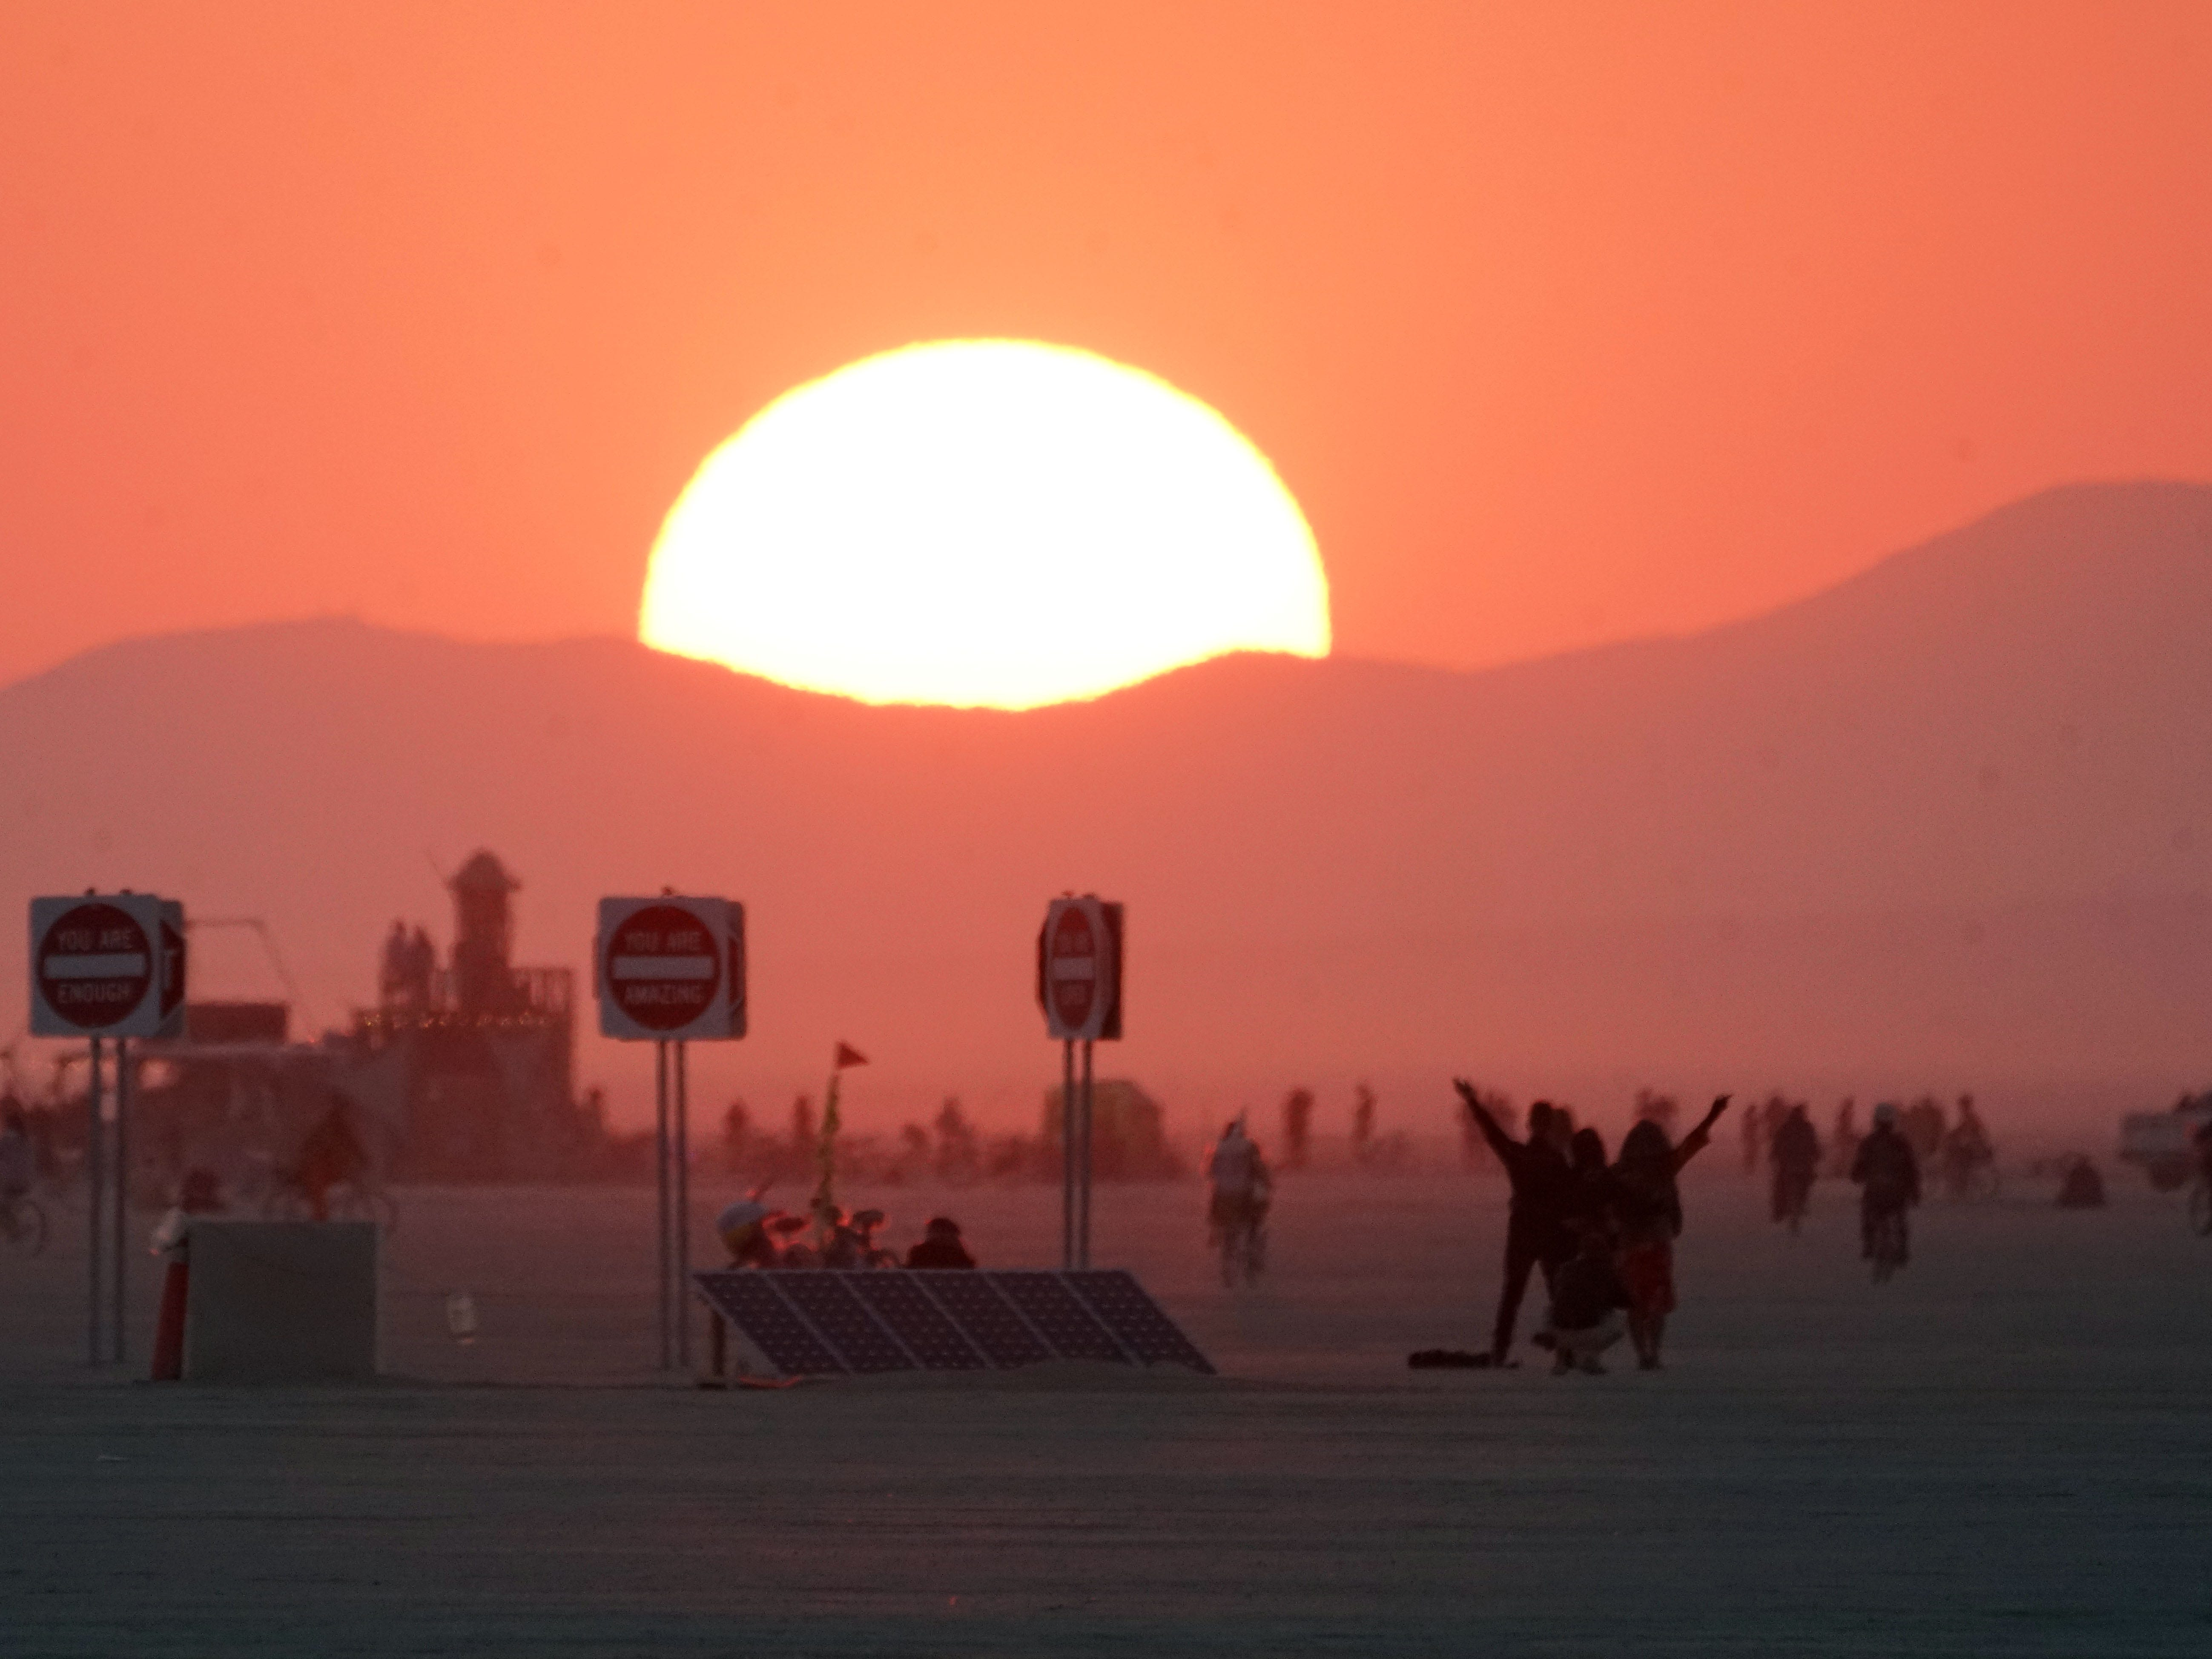 Burning Man participants greet the morning sun on Friday morning after a night of parties and dancing Aug 31, 2018.